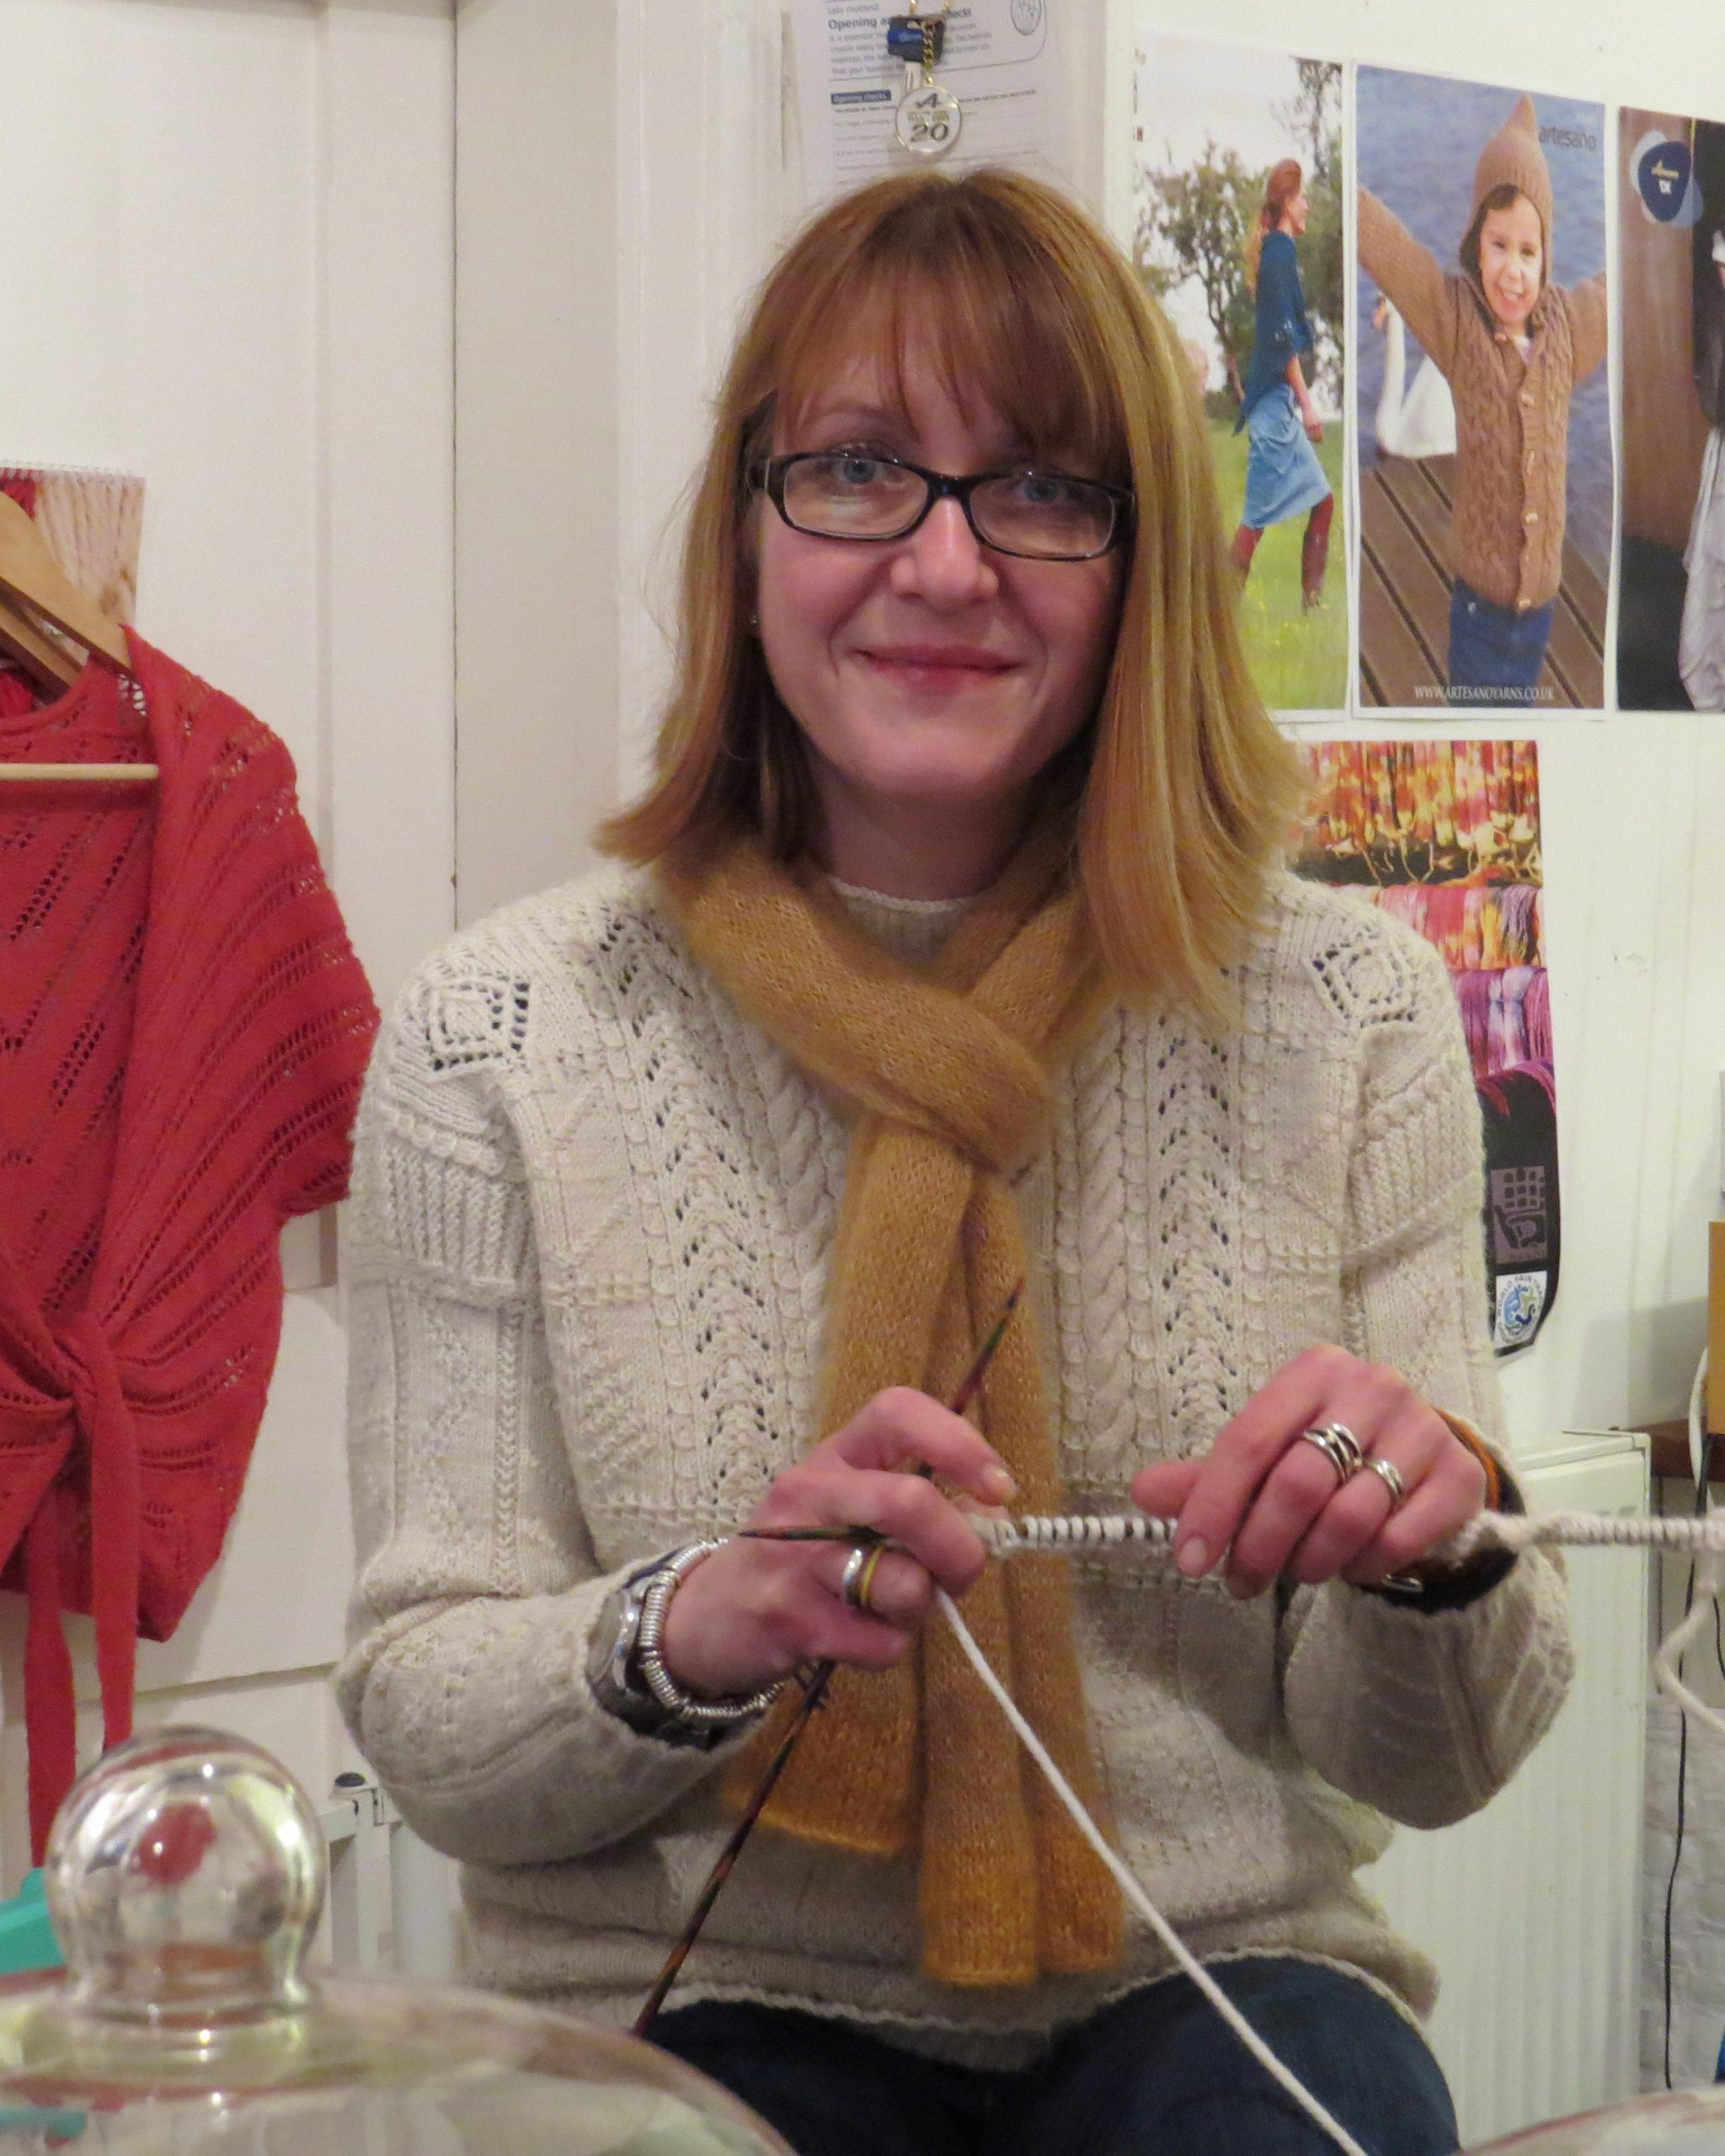 Victoria from Cafe Knit in Lavenham